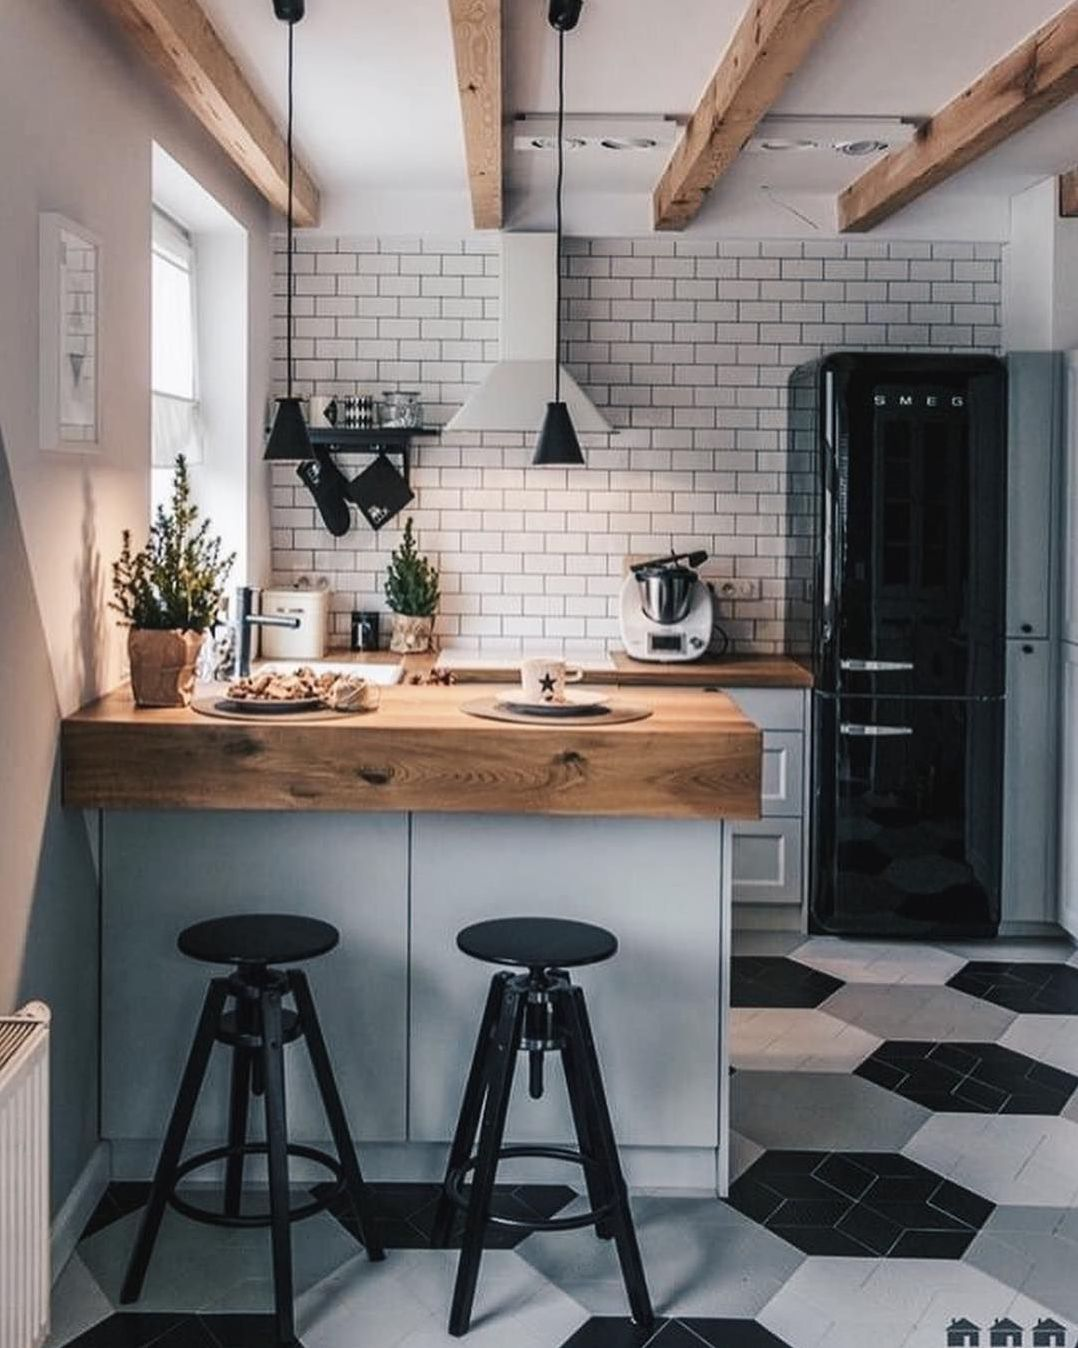 17 Stunning Small Kitchen Design Ideas With Images Kitchen